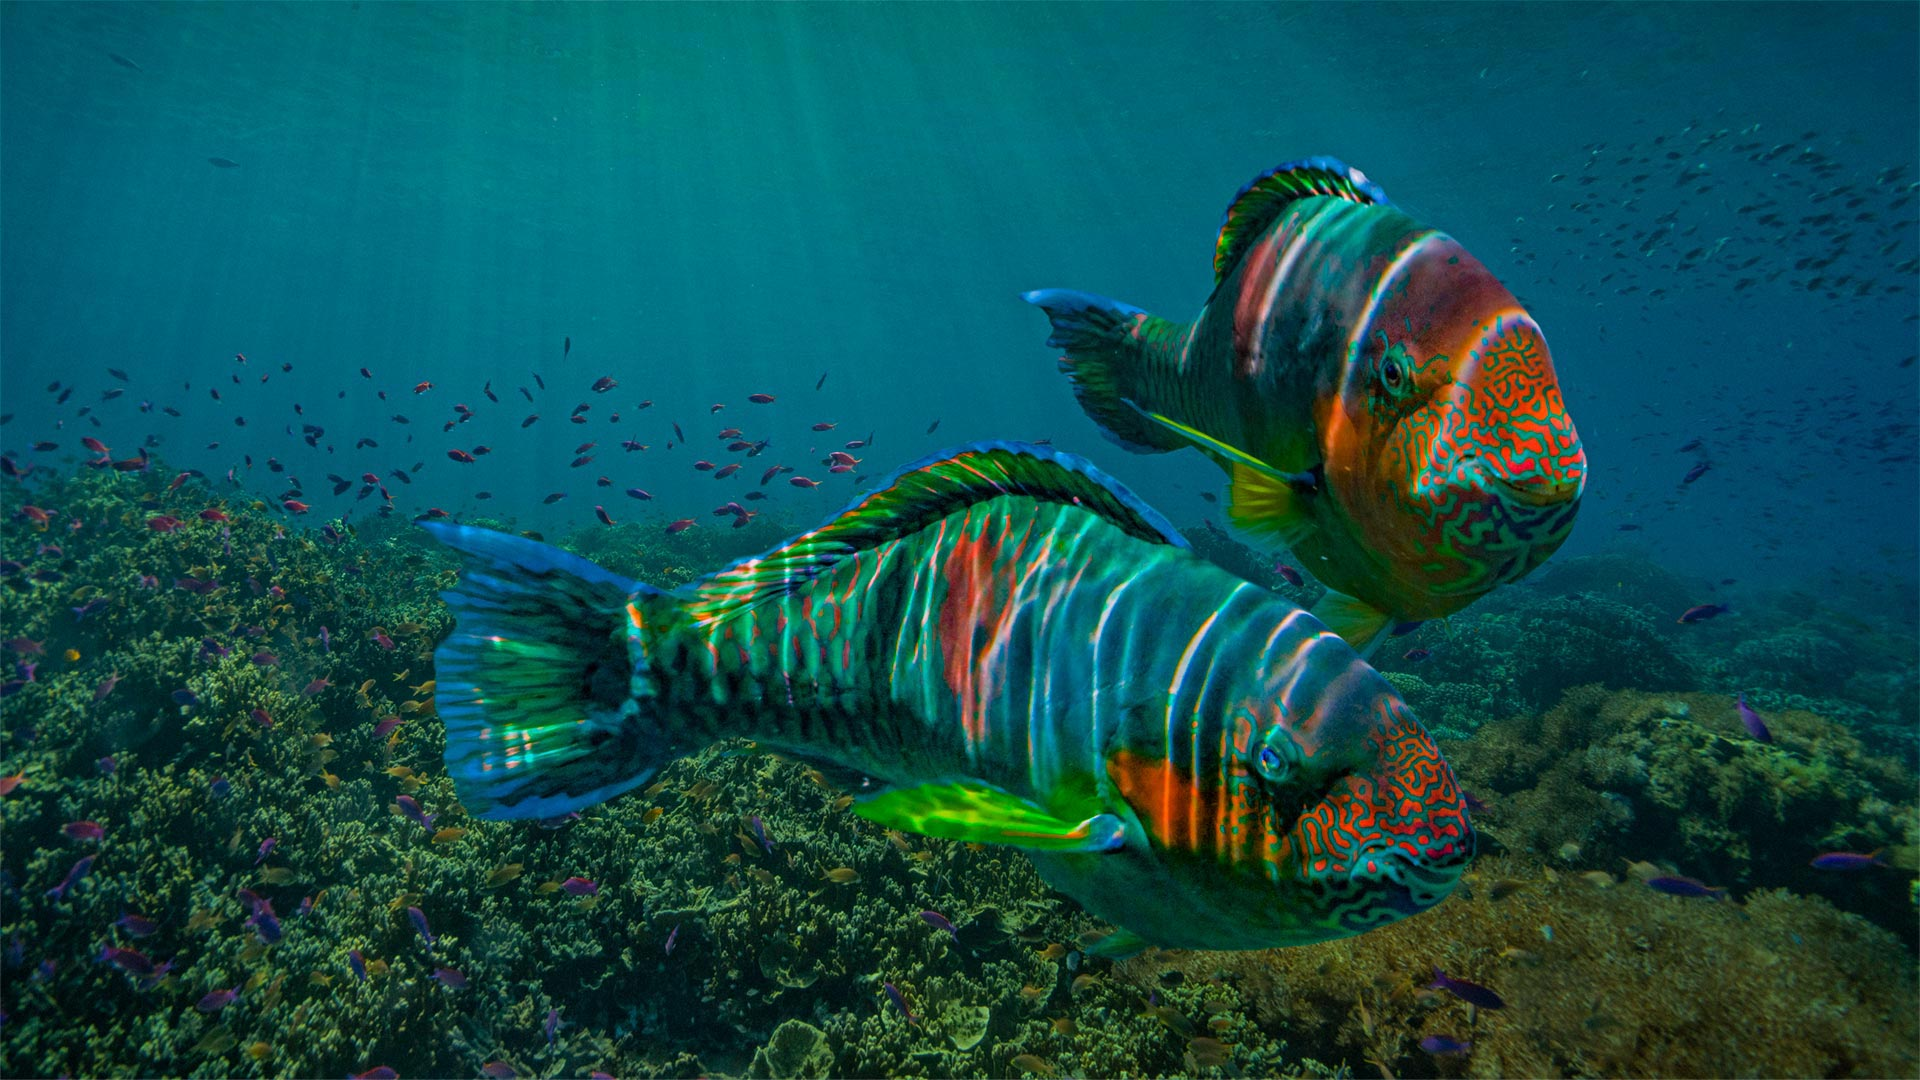 Parrotfish off the coast of Negros Oriental province in the Philippines (© Tim Fitzharris/Minden Pictures)(Bing United States)